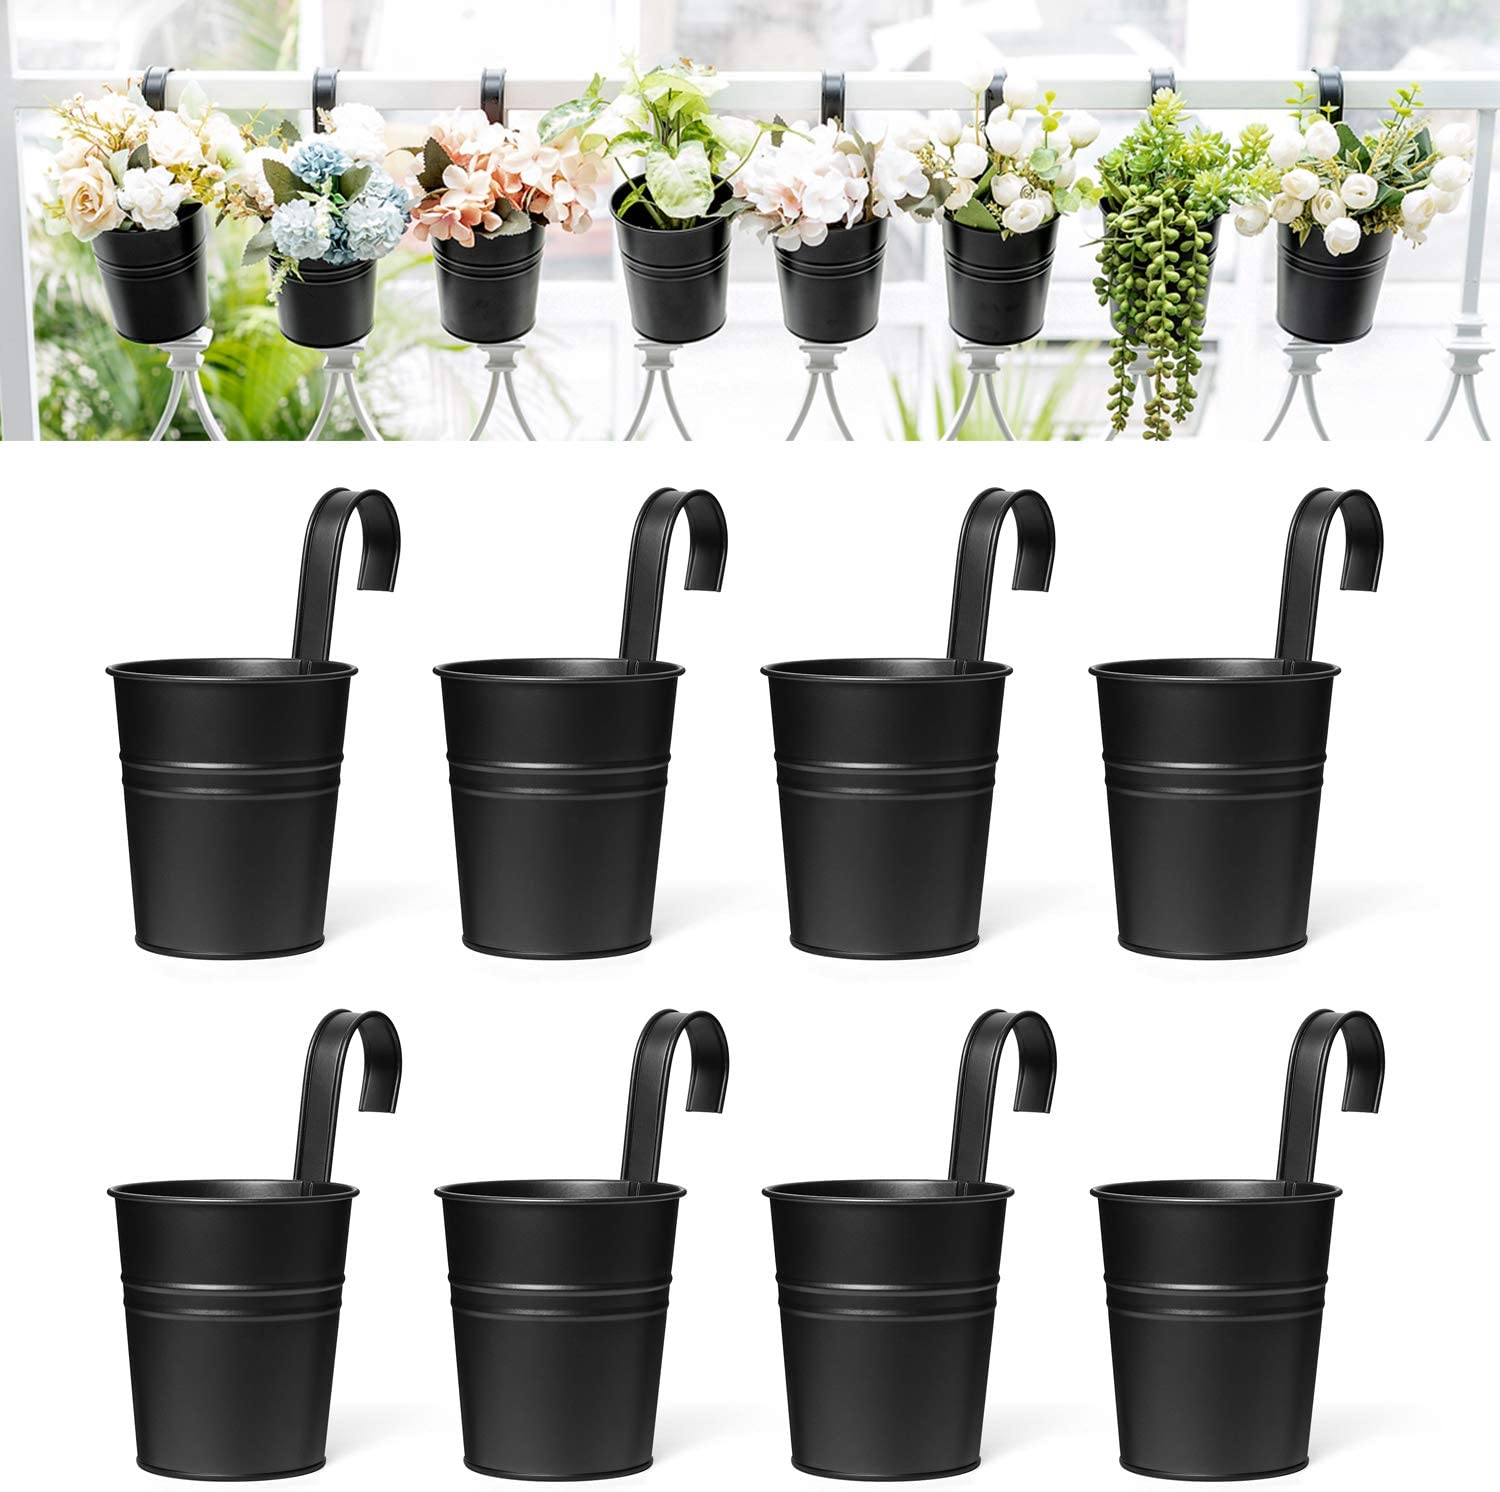 Dahey 8 Pcs Hanging Flower Pots Metal Iron Bucket Planter for Railing Fence Balcony Garden Home Decoration Flower Holders with Detachable Hooks, Black, 4 Inches